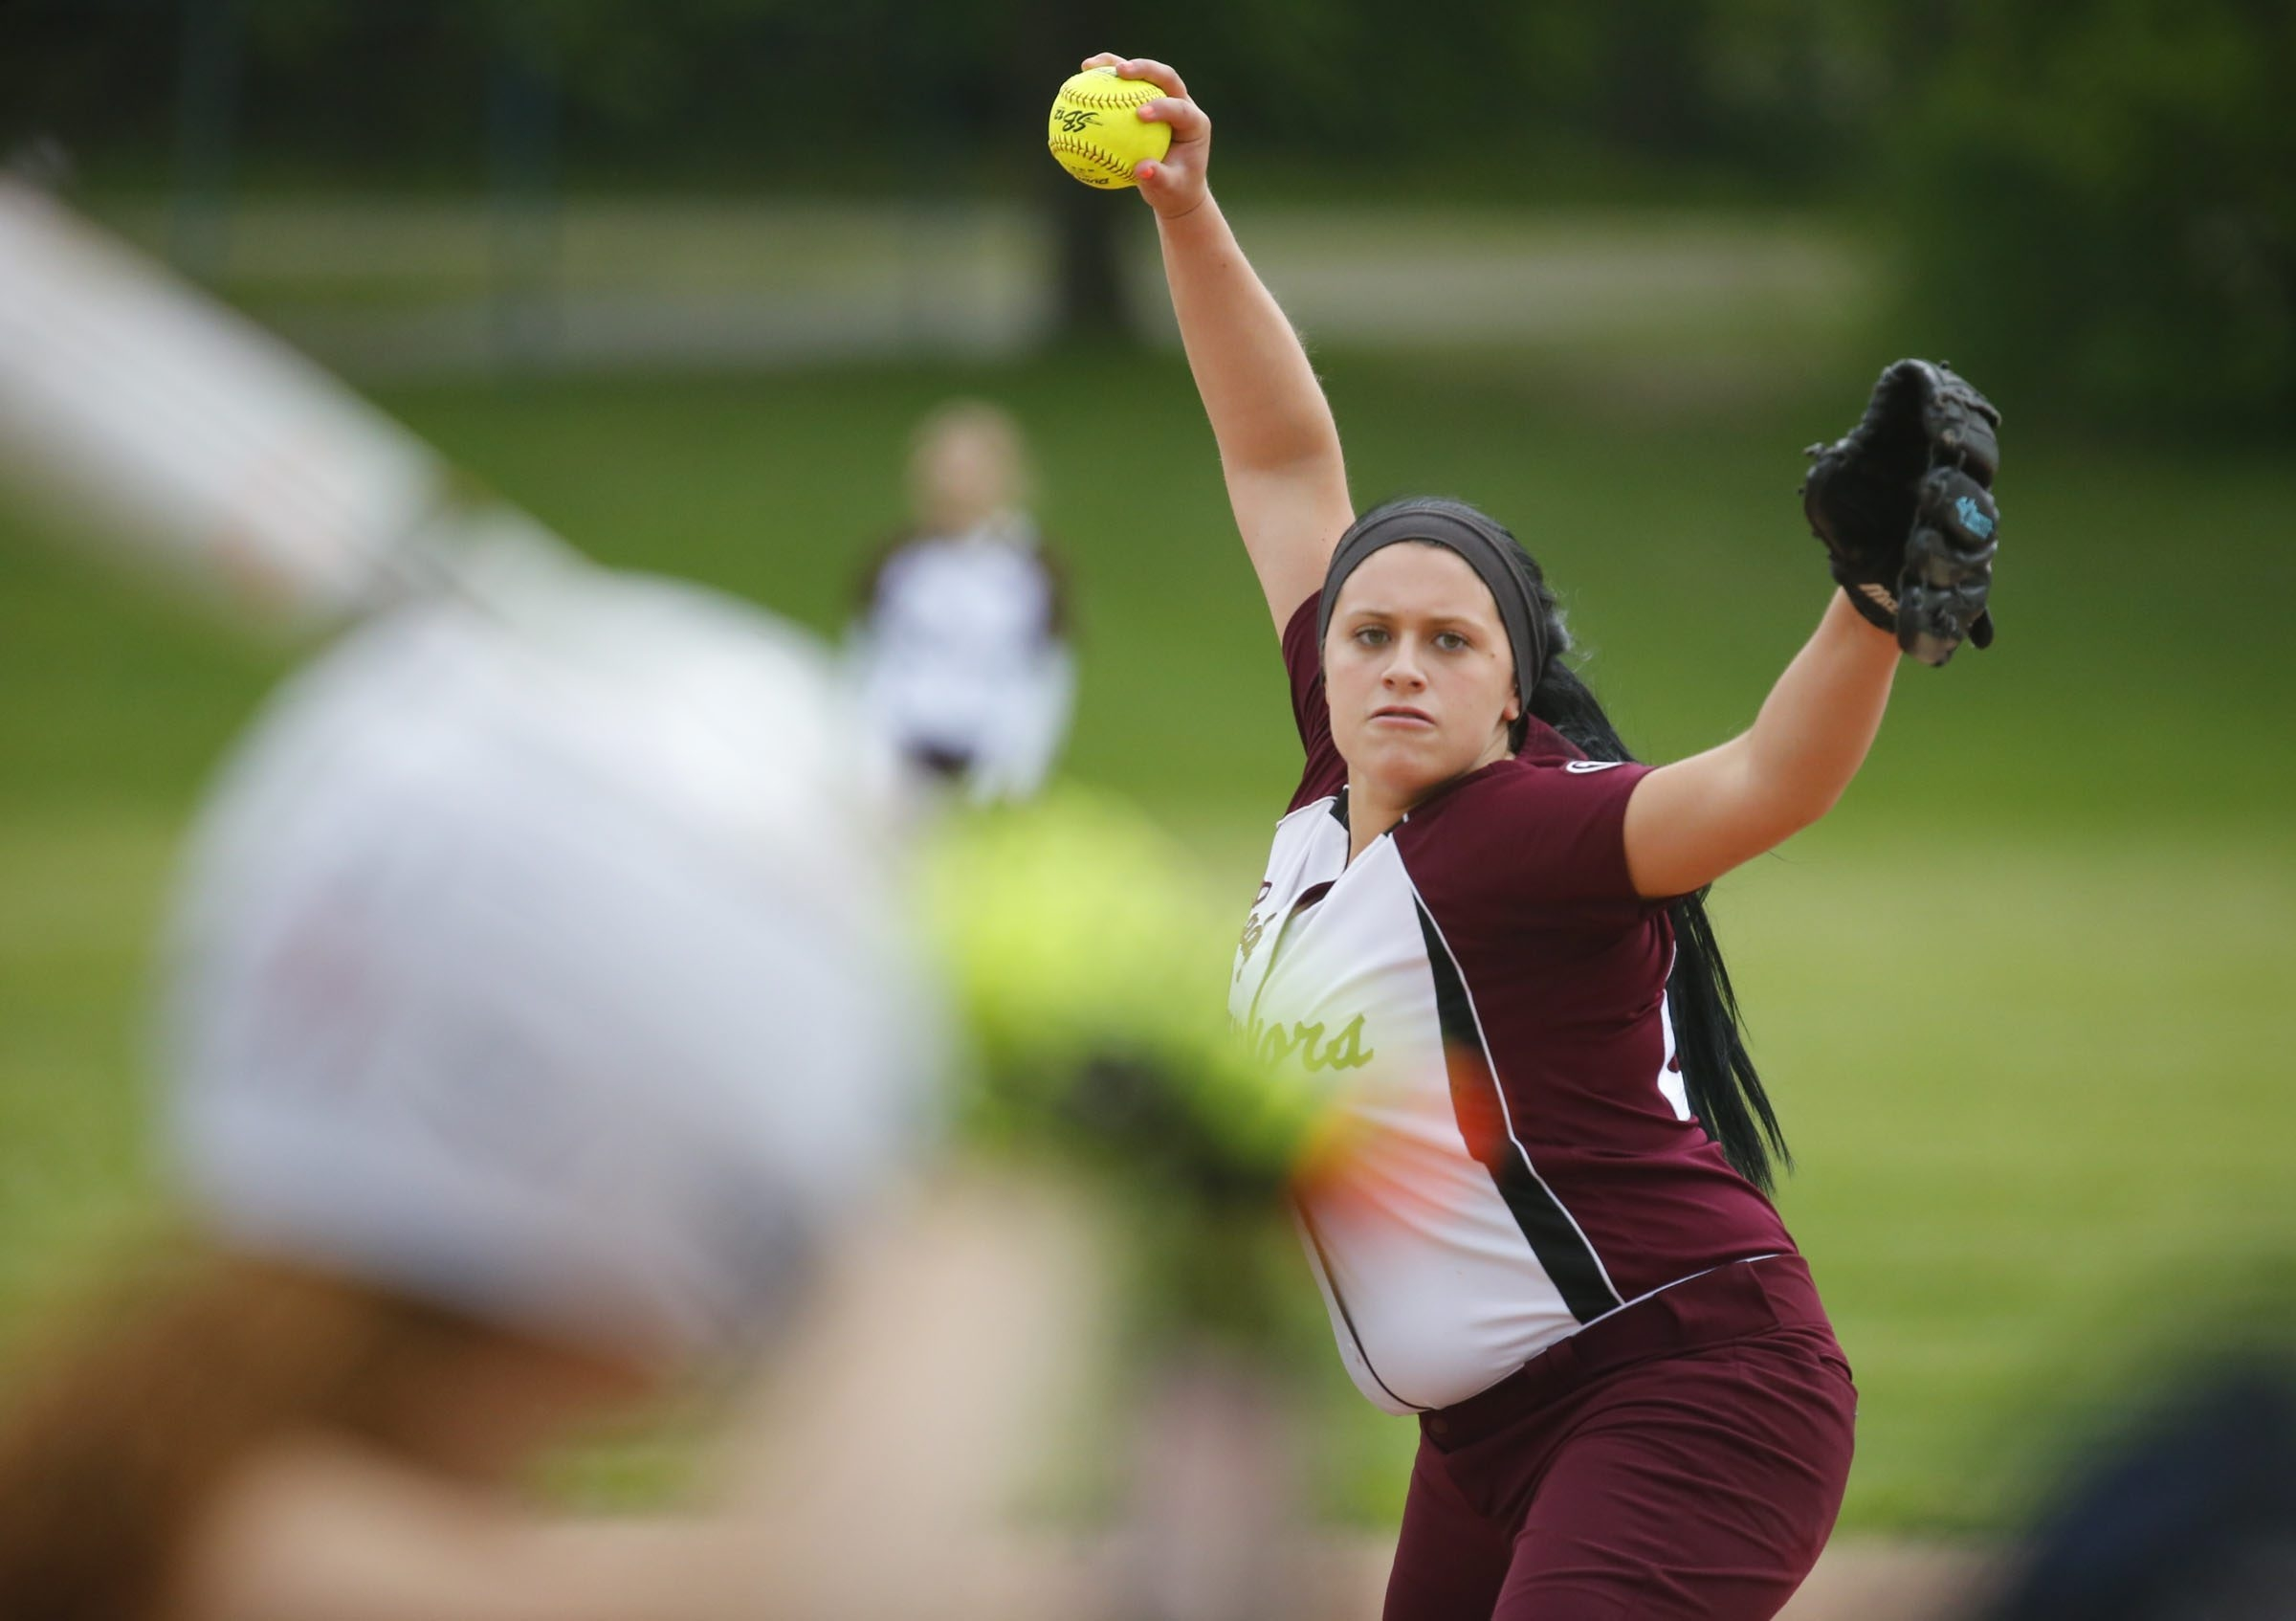 Rachel Allen struck out 11 during Tonawanda's 2-0 victory at Eden in a key ECIC IV softball contest.